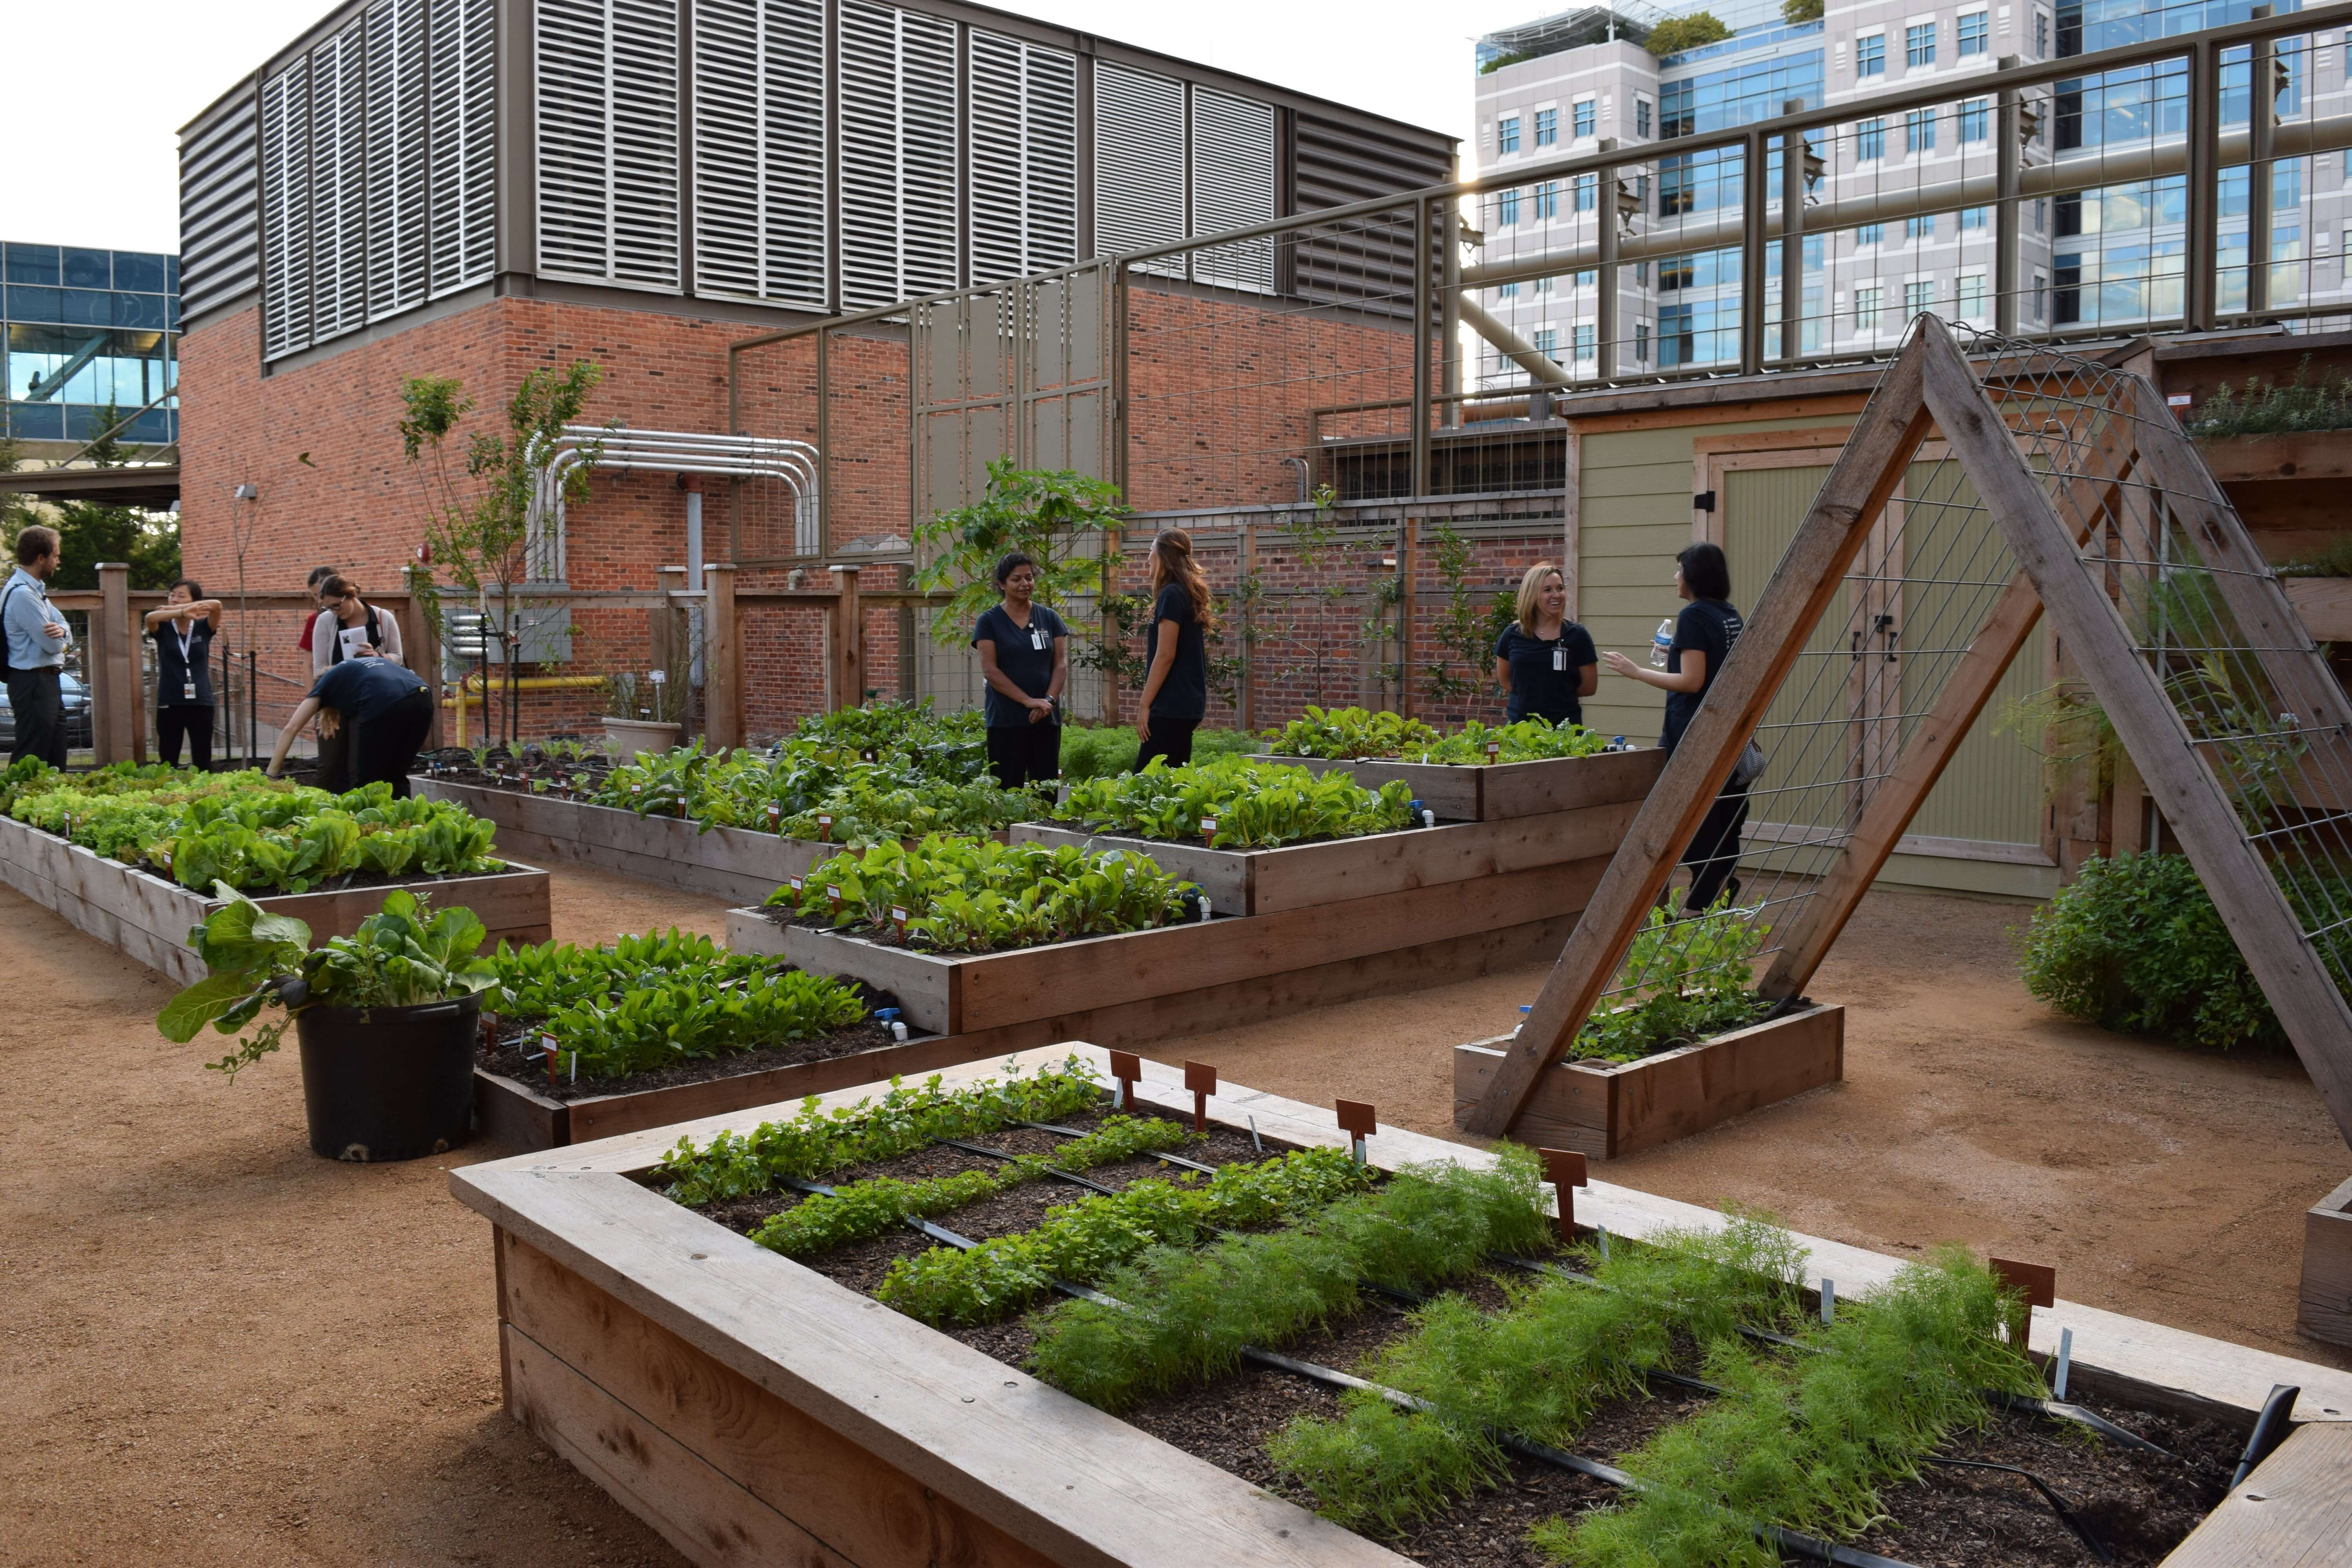 The holistic garden at the UTHealth School of Public Health